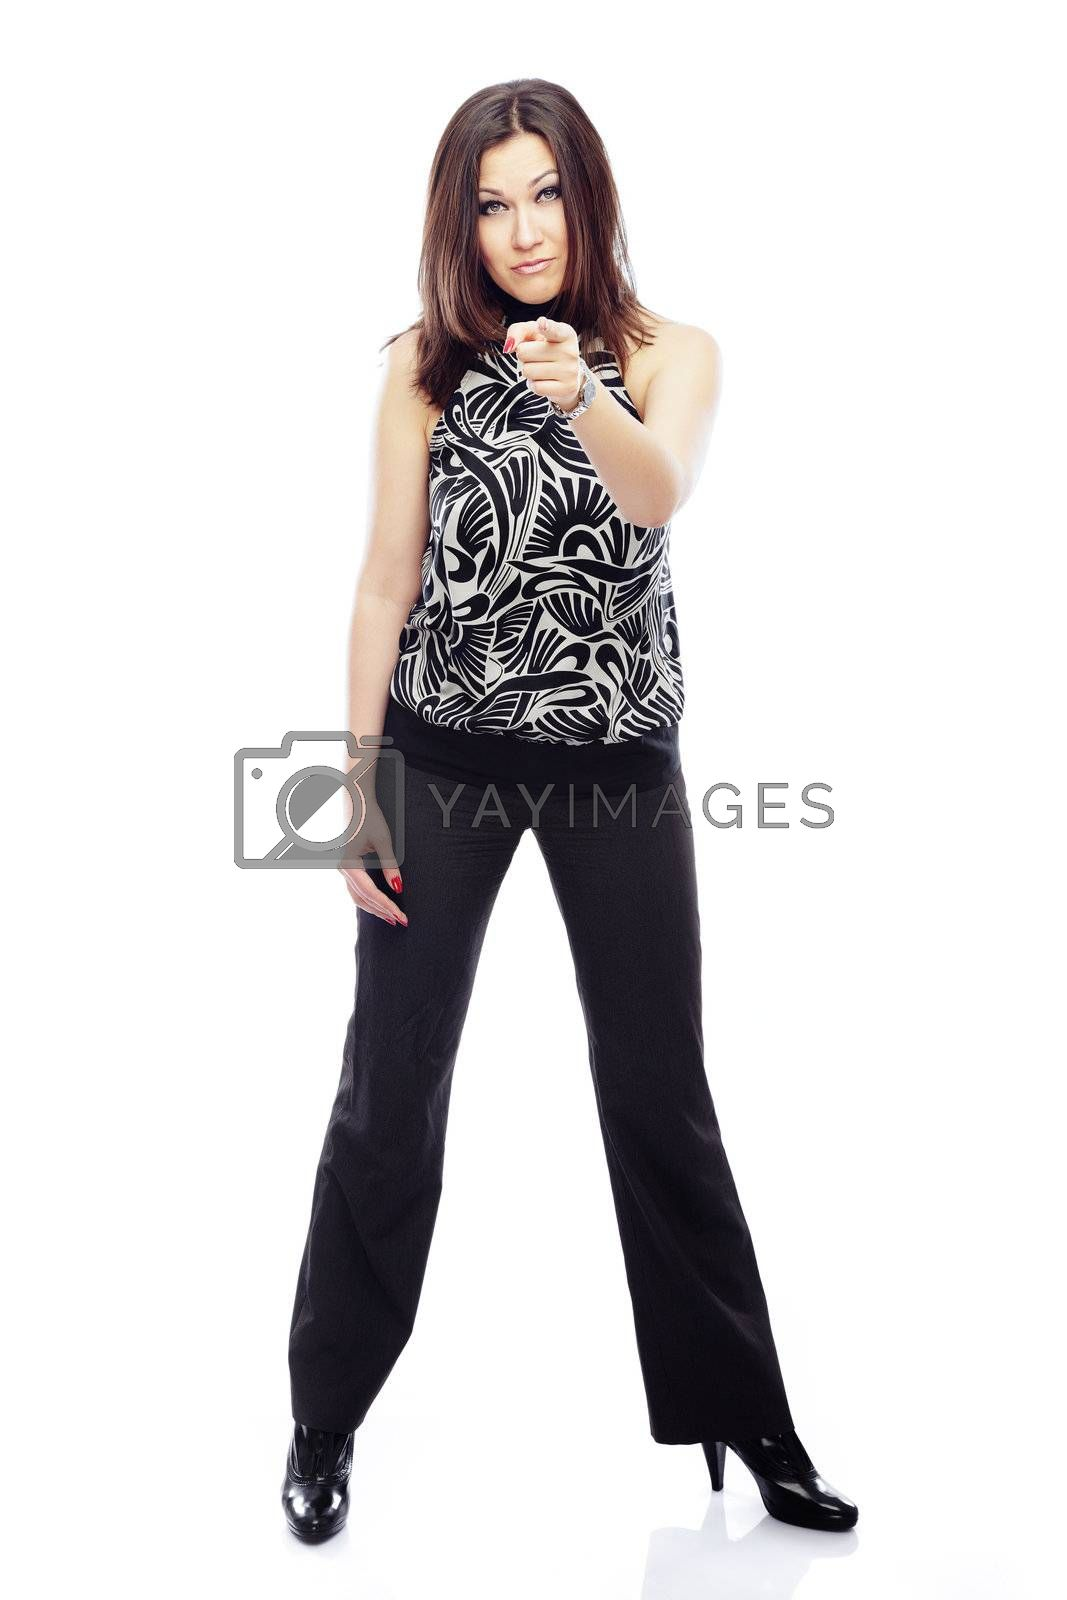 Angry businesswoman on a white background pointing her finger